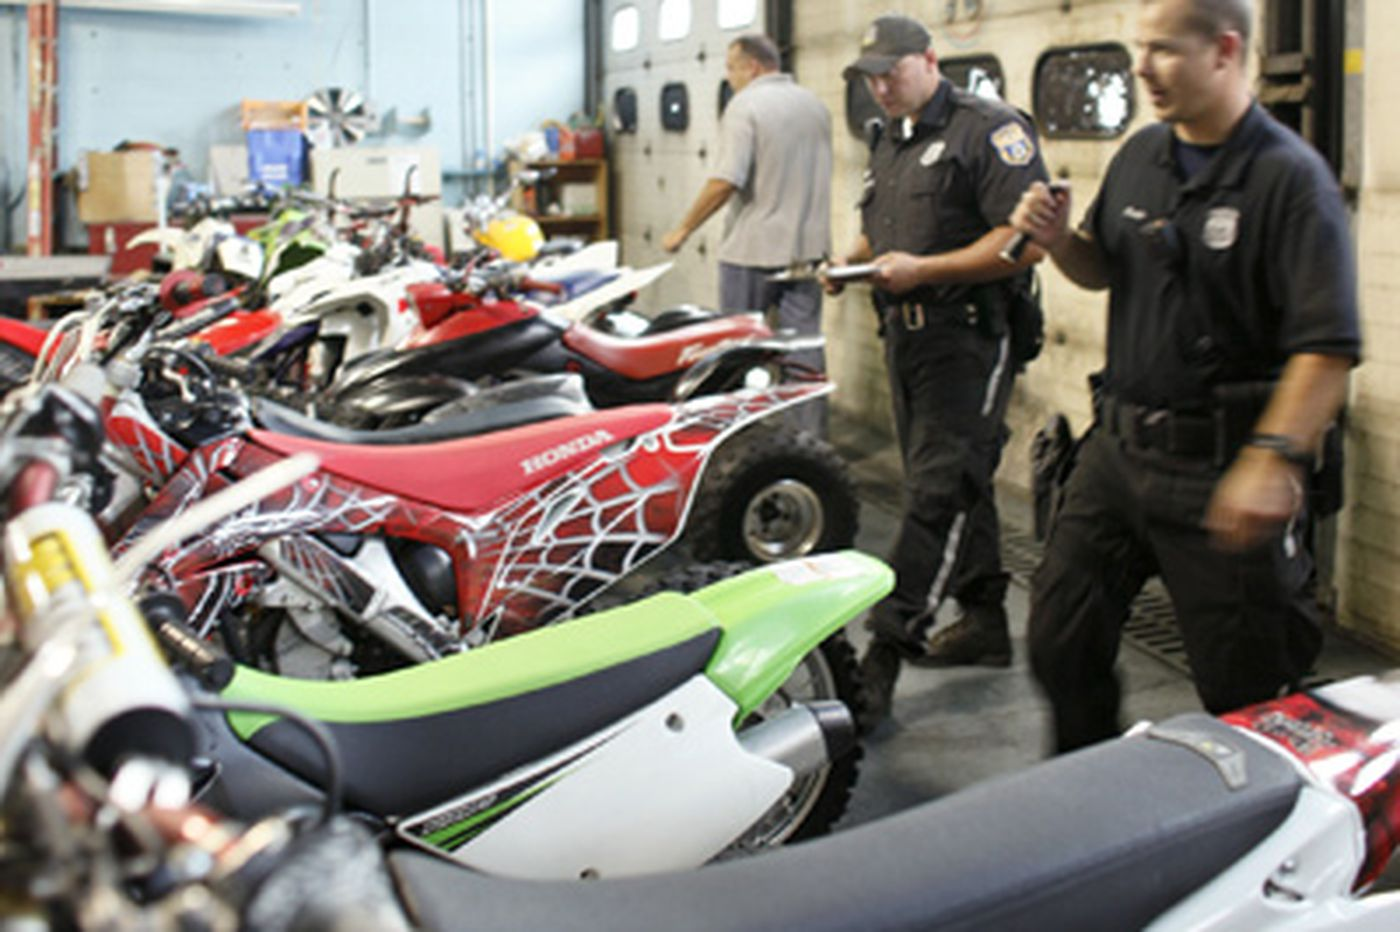 Philly cops seize illegal ATVs, dirt bikes